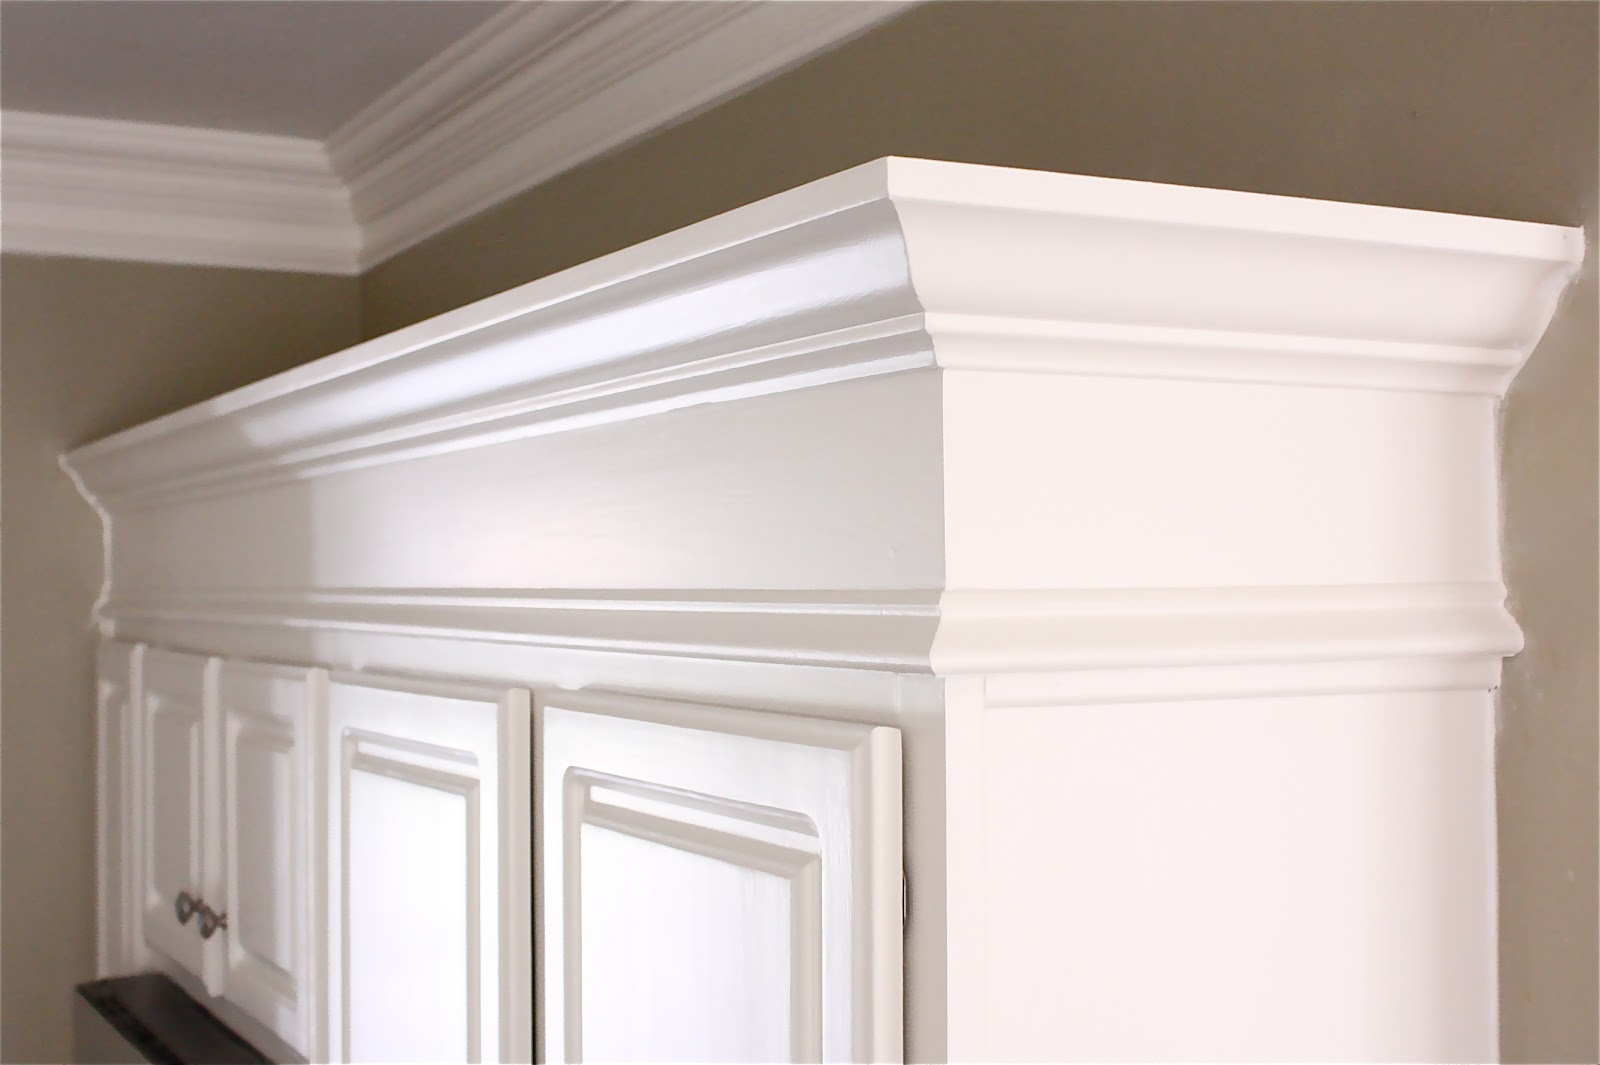 Making Cabinets Taller Builder Go Custom With Molding